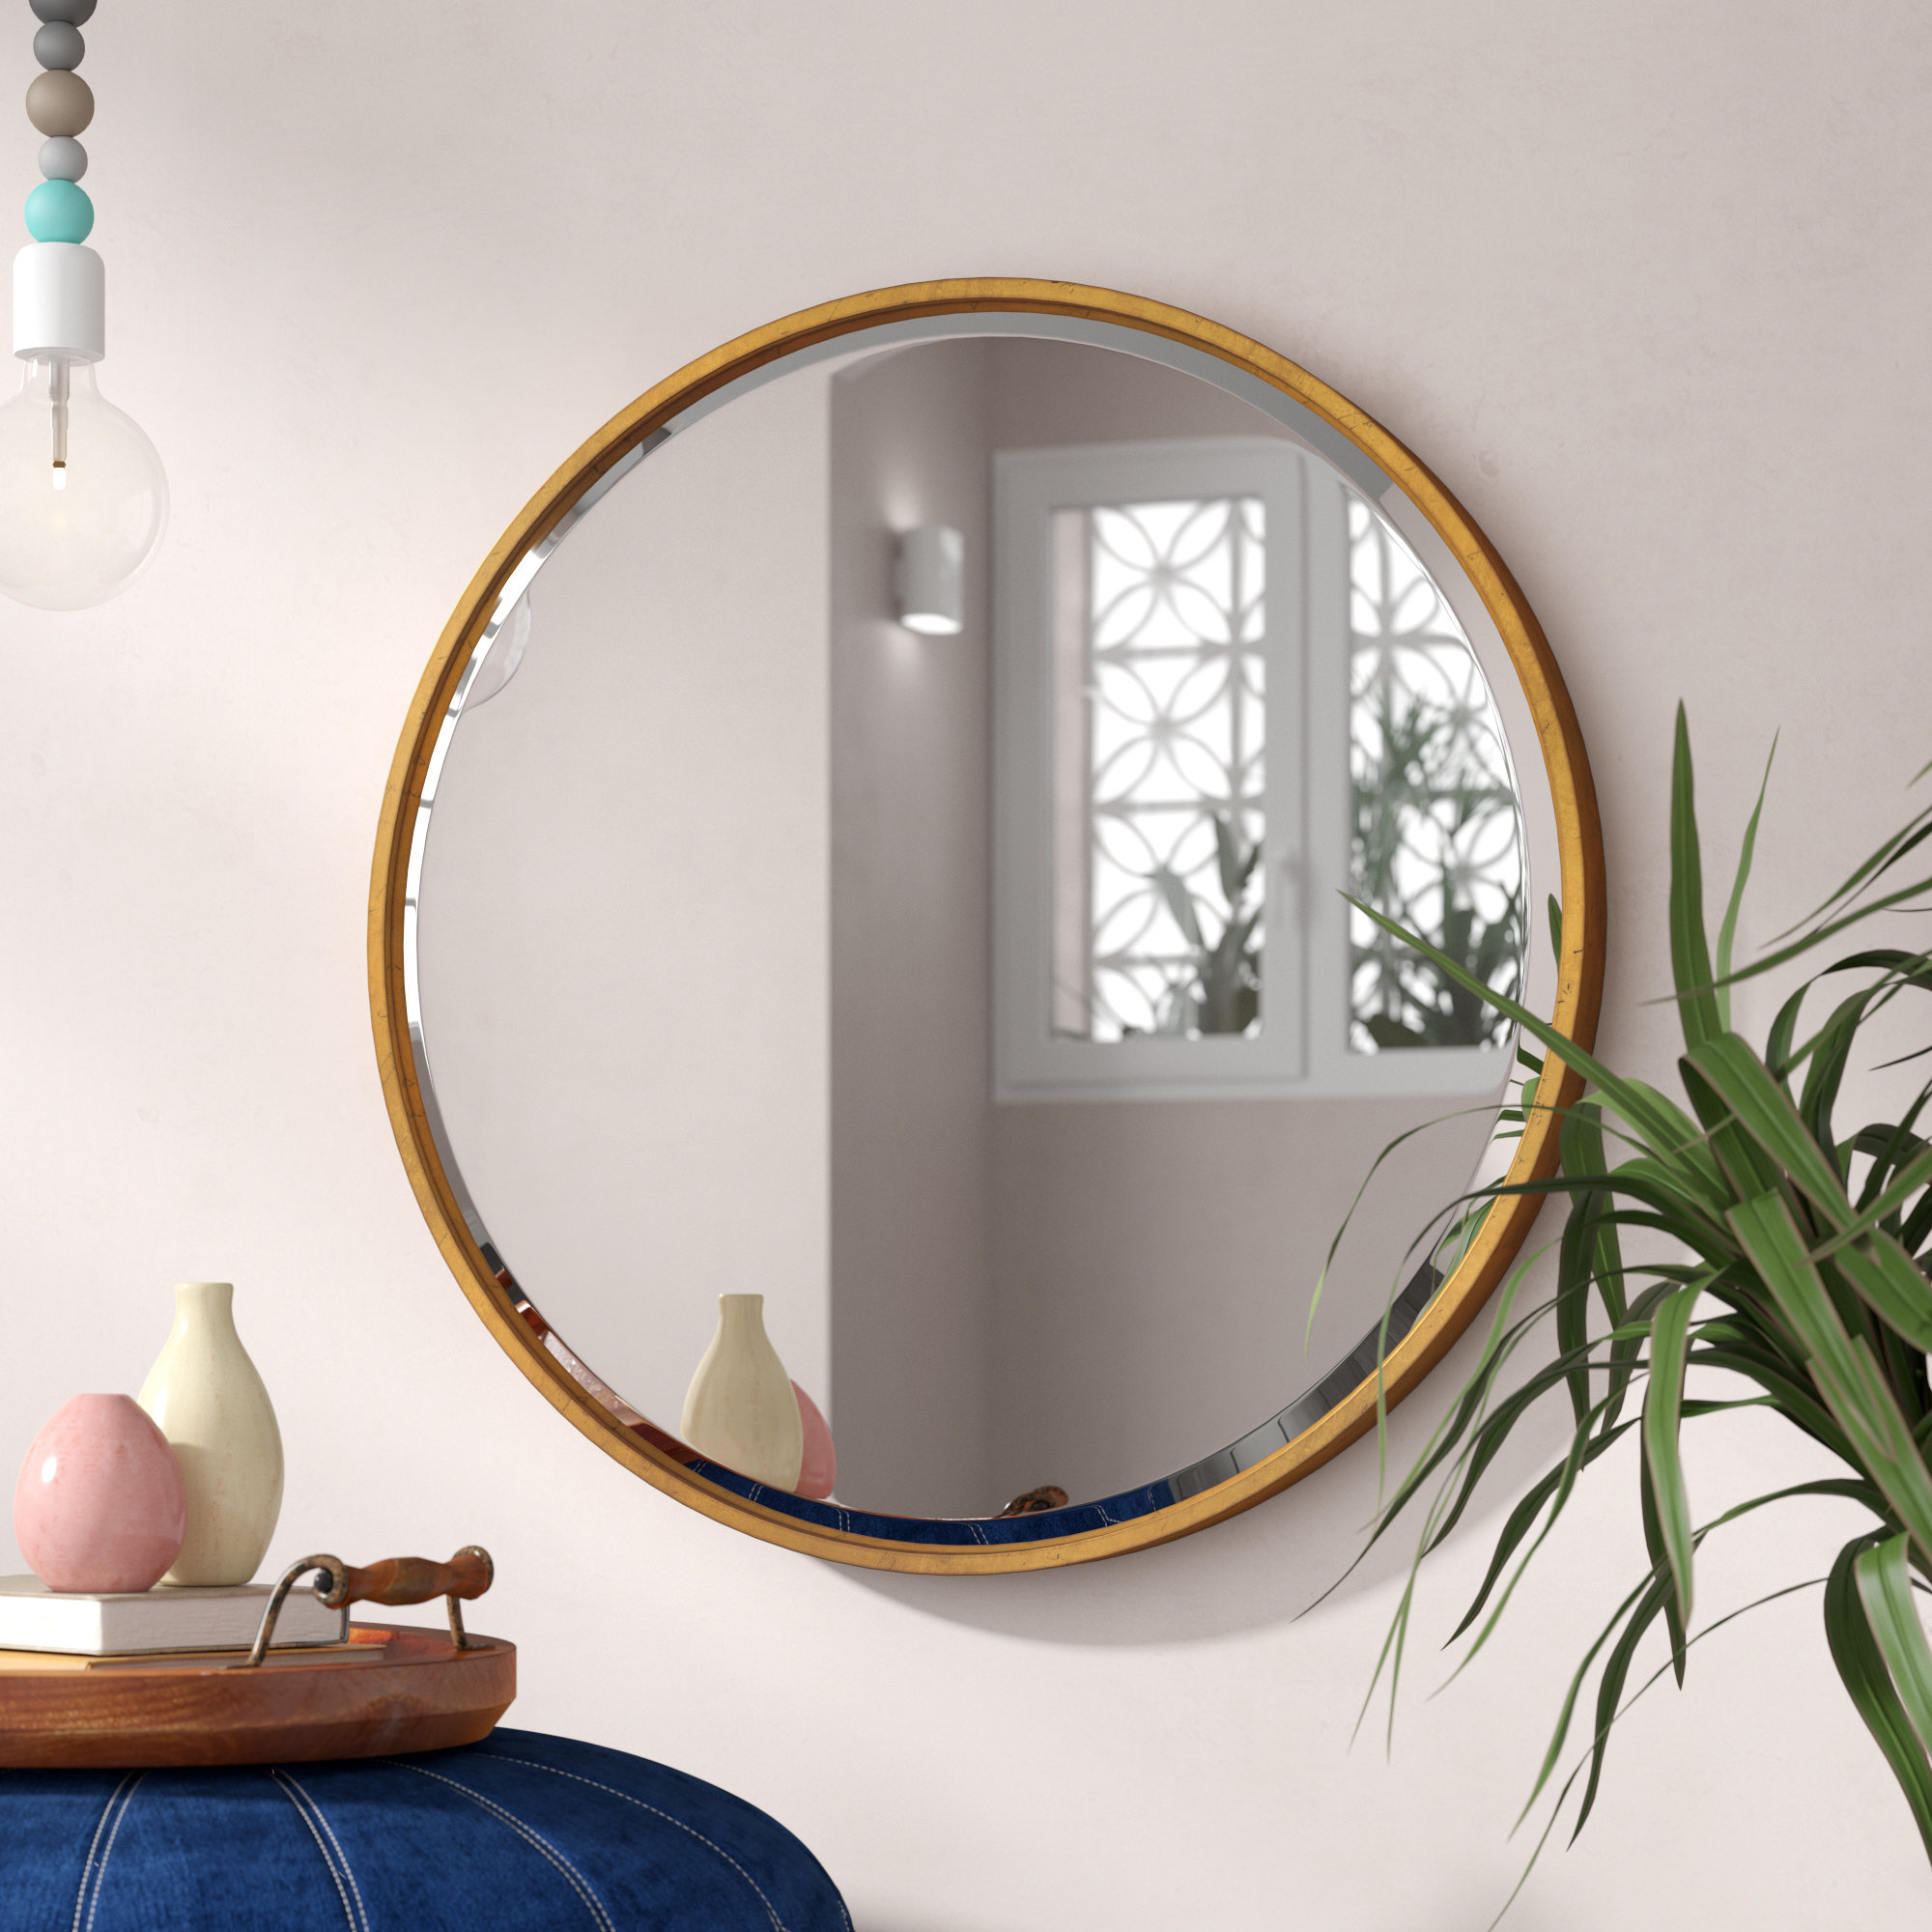 Jamie Modern & Contemporary Beveled Wall Mirror Intended For Colton Modern & Contemporary Wall Mirrors (View 18 of 30)